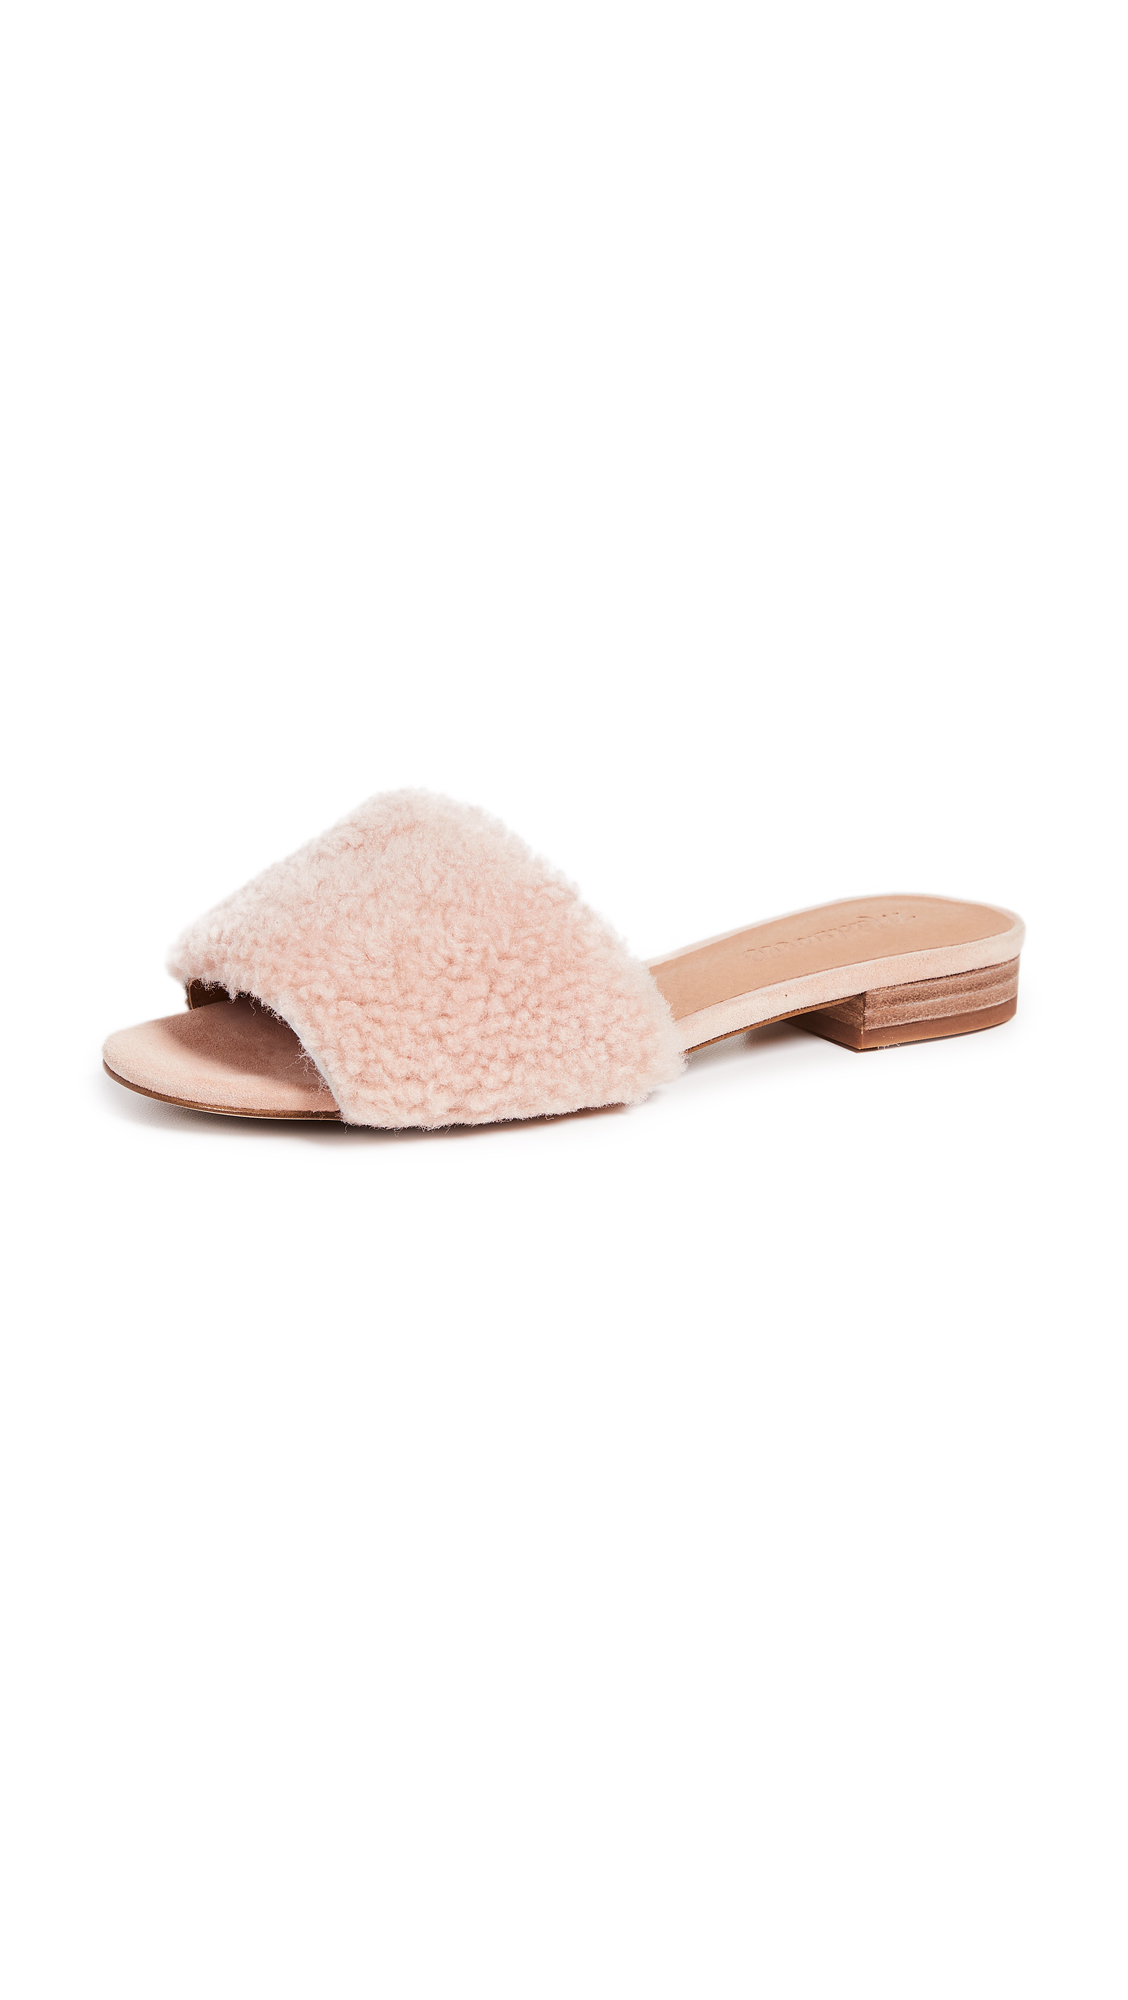 Madewell The Jackson Shearling Slide Sandals - Sheer Pink